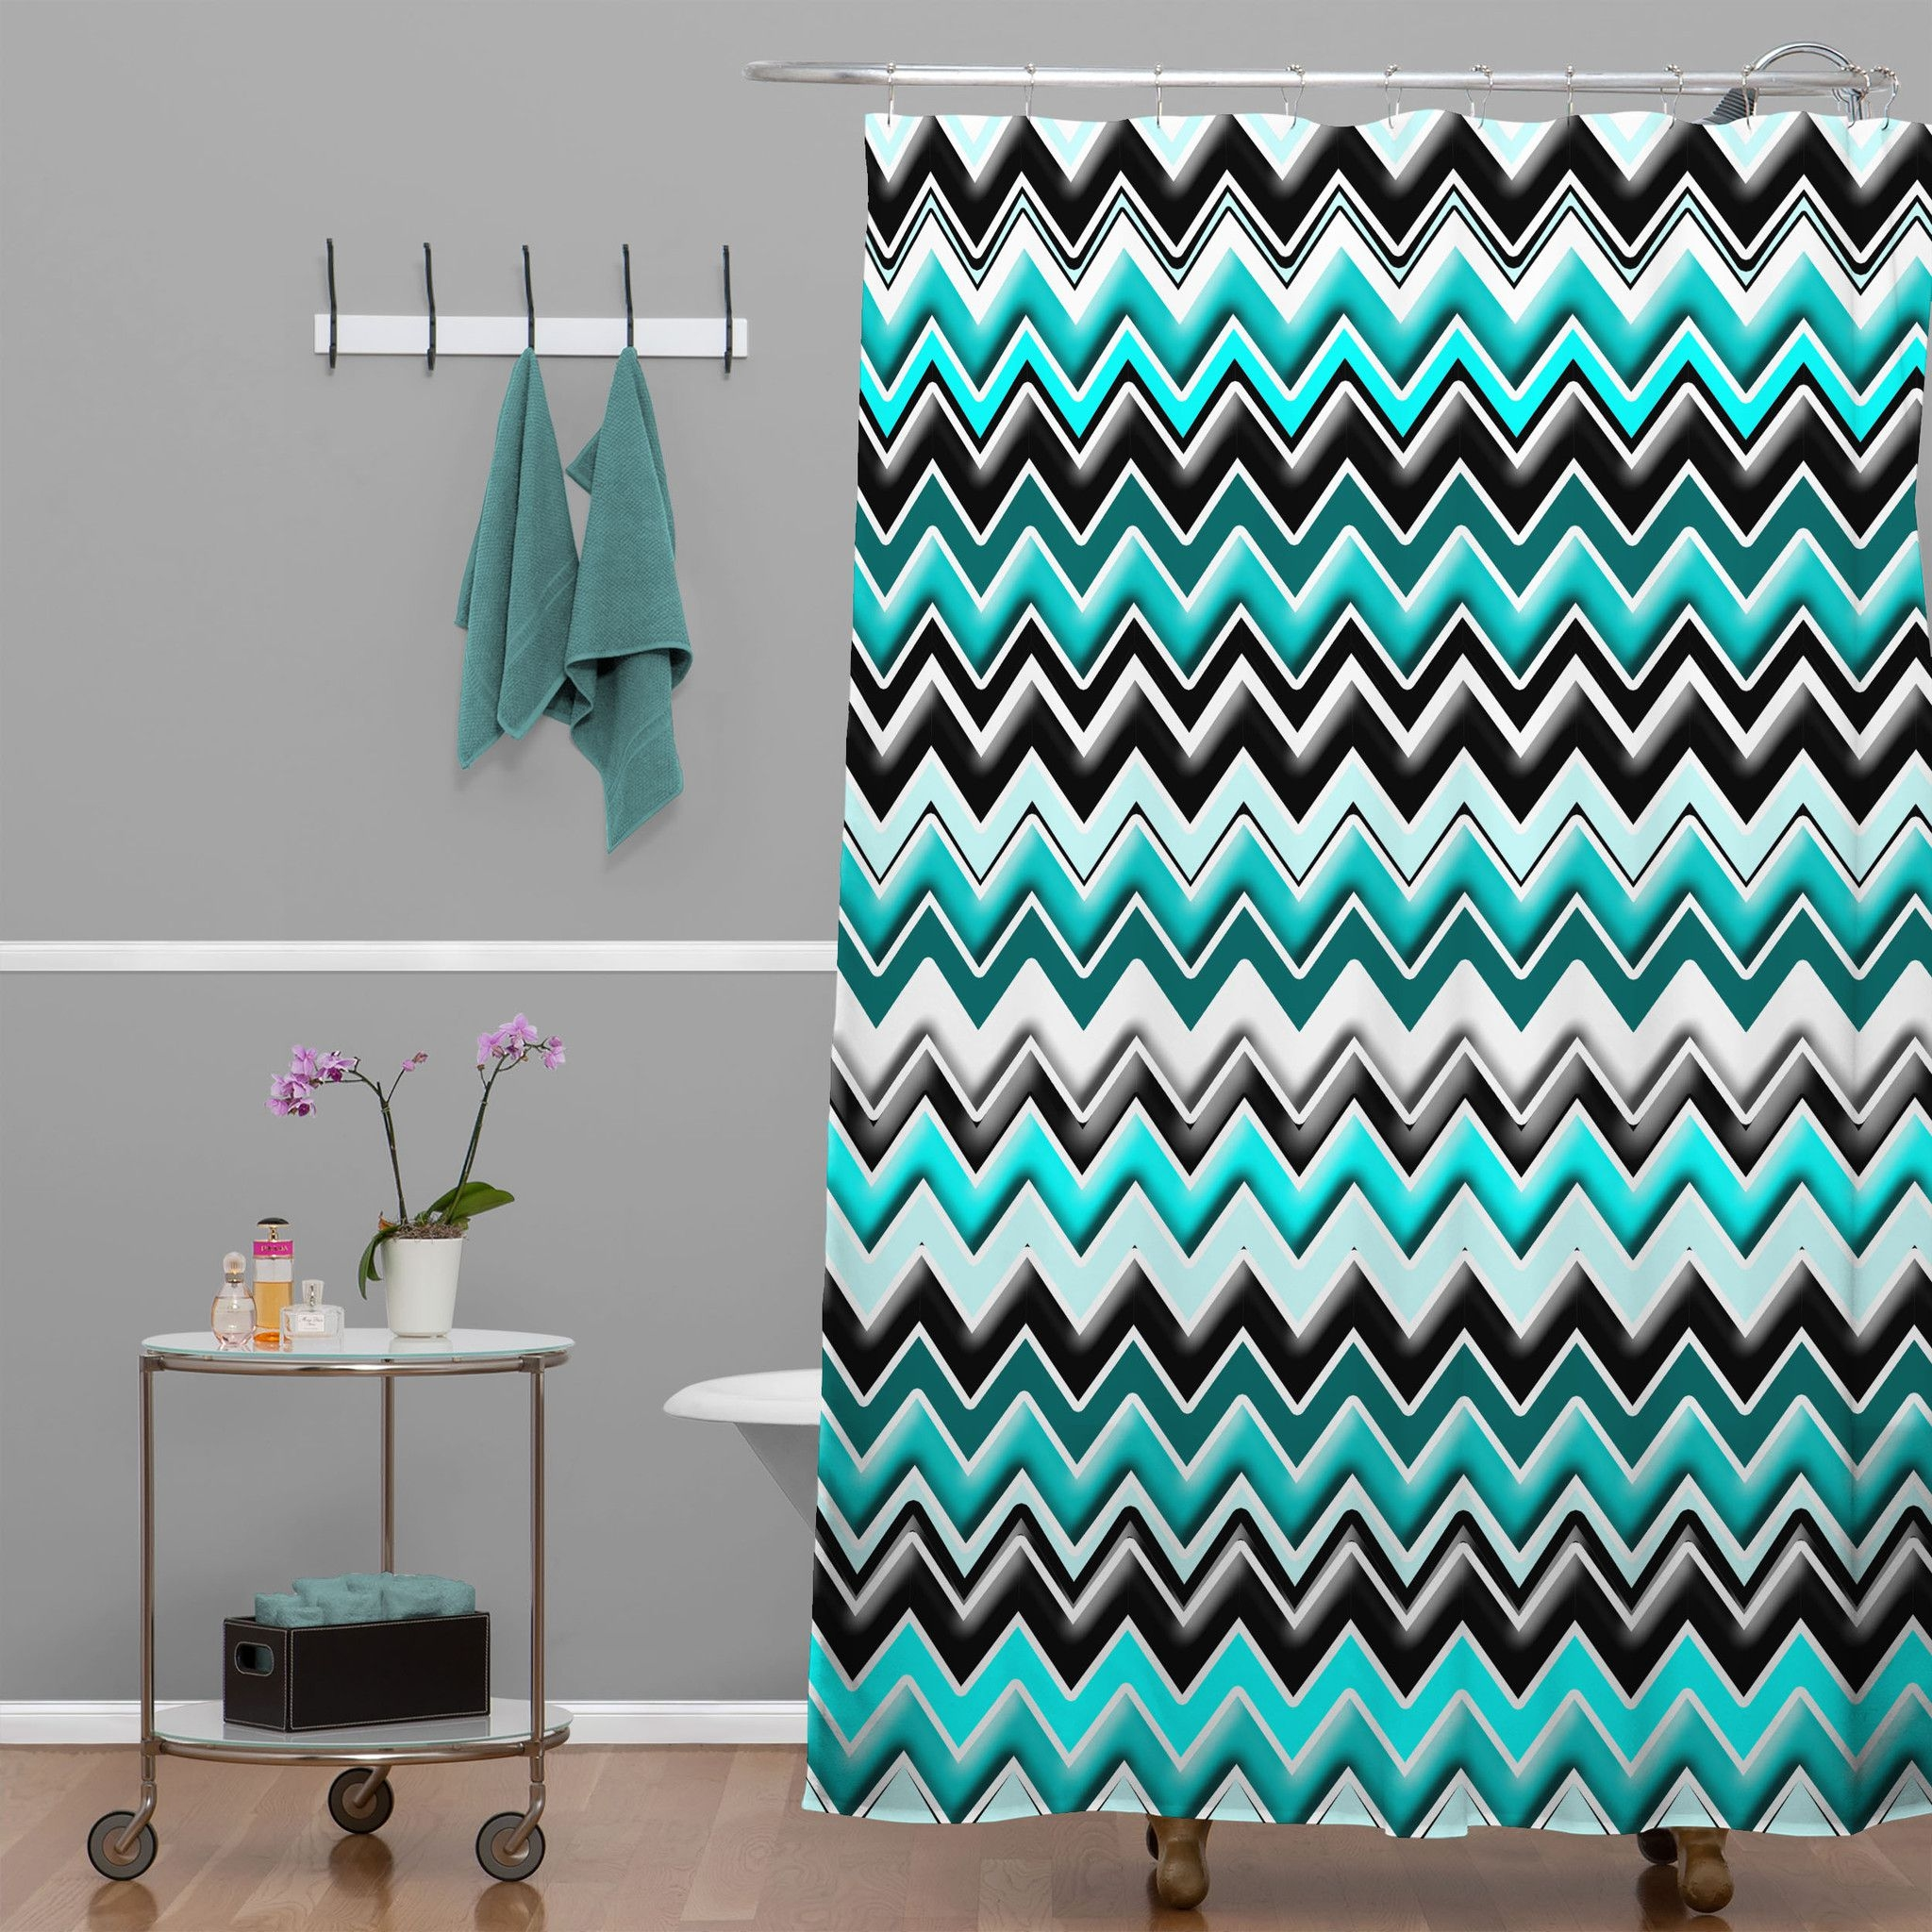 Green Chevron Shower Curtain Curtains Decoration Inside Gray Chevron Shower Curtains (Image 8 of 25)